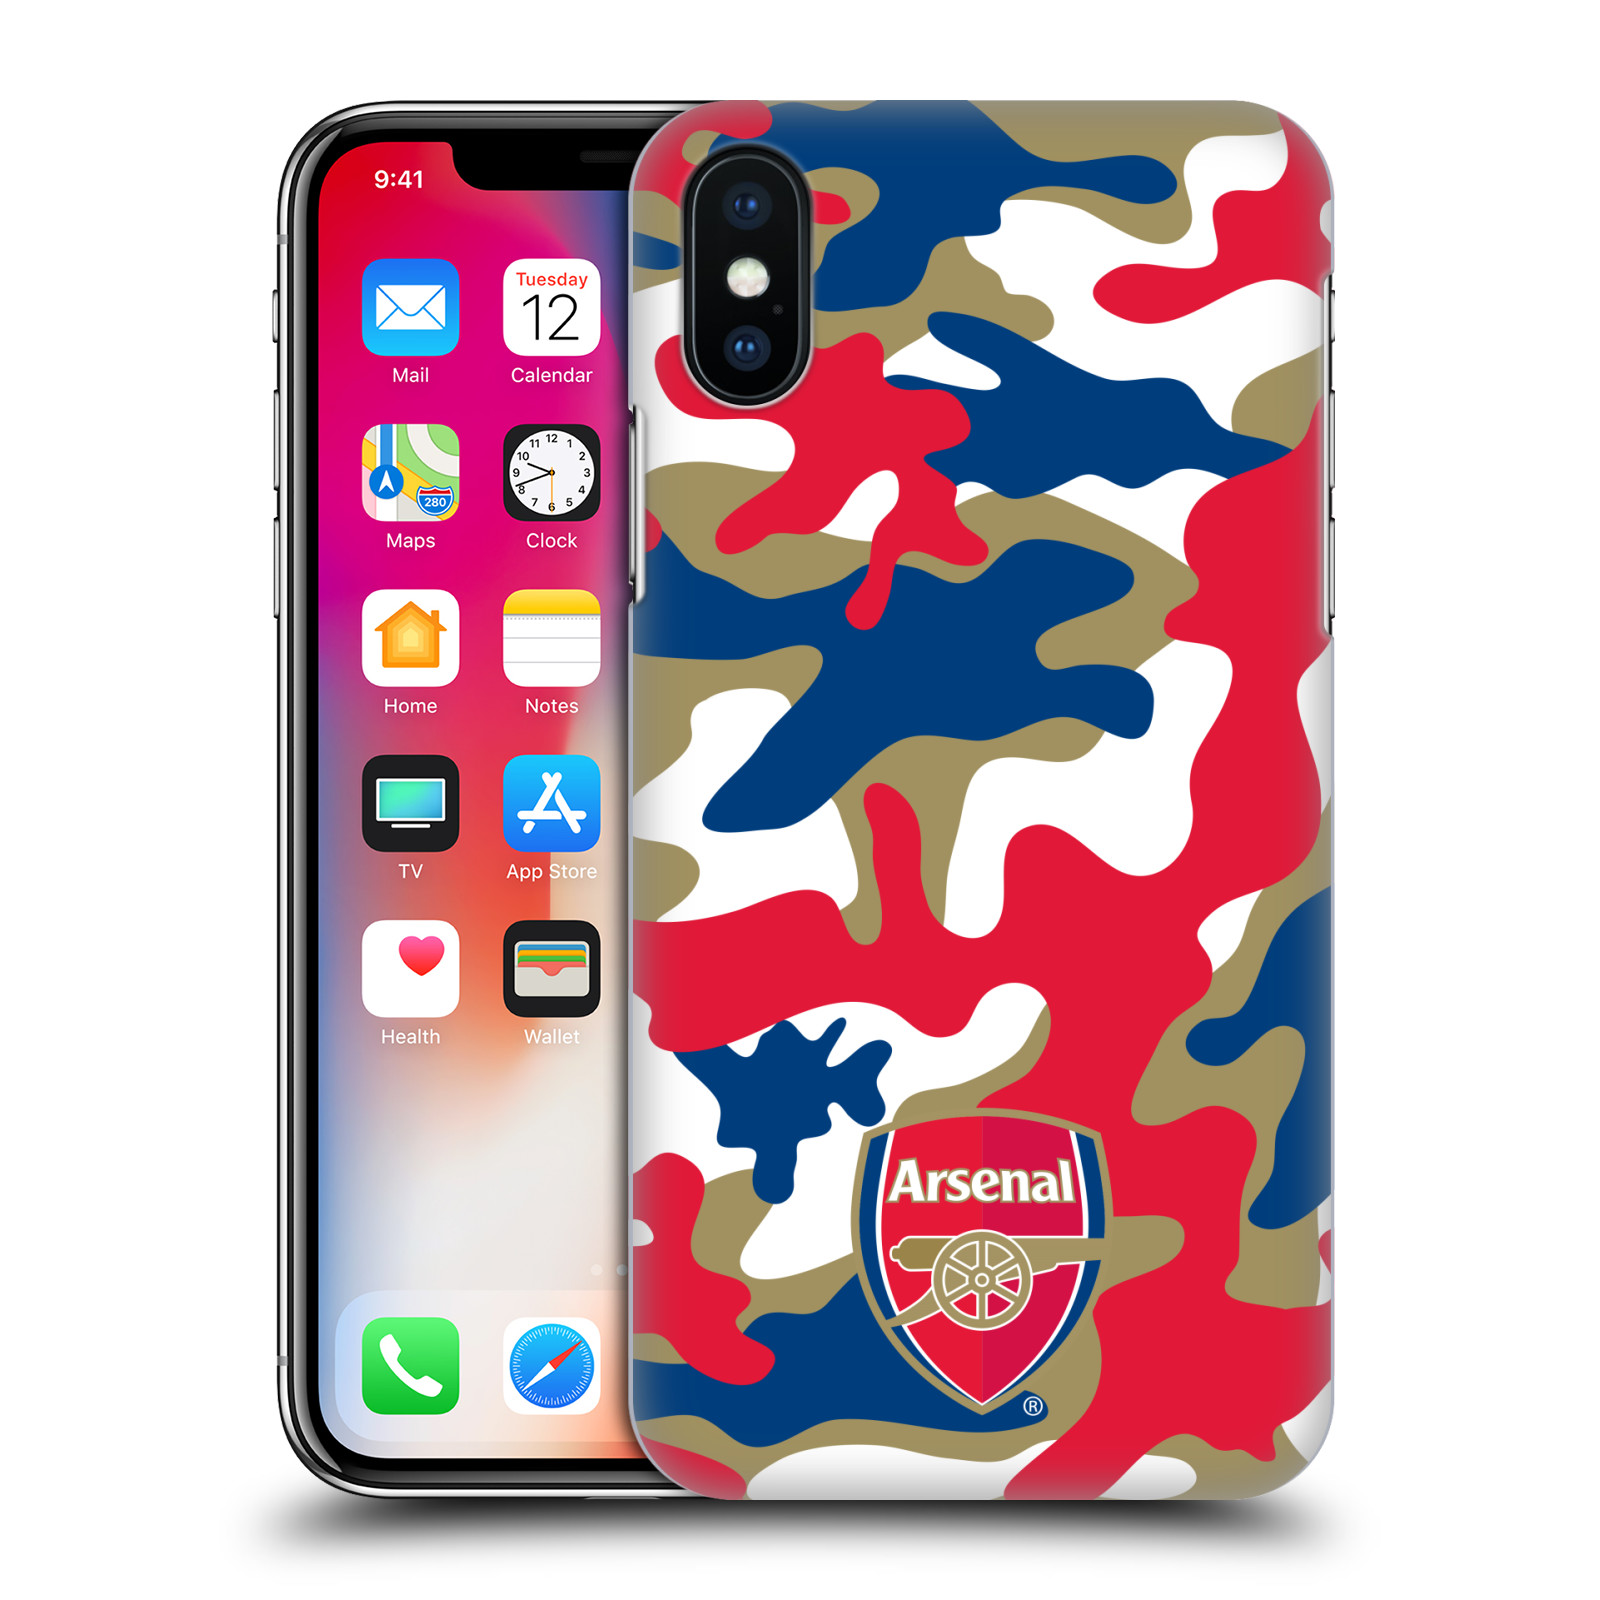 OFFICIAL-ARSENAL-FC-2017-18-CREST-PATTERNS-BACK-CASE-FOR-APPLE-iPHONE-PHONES